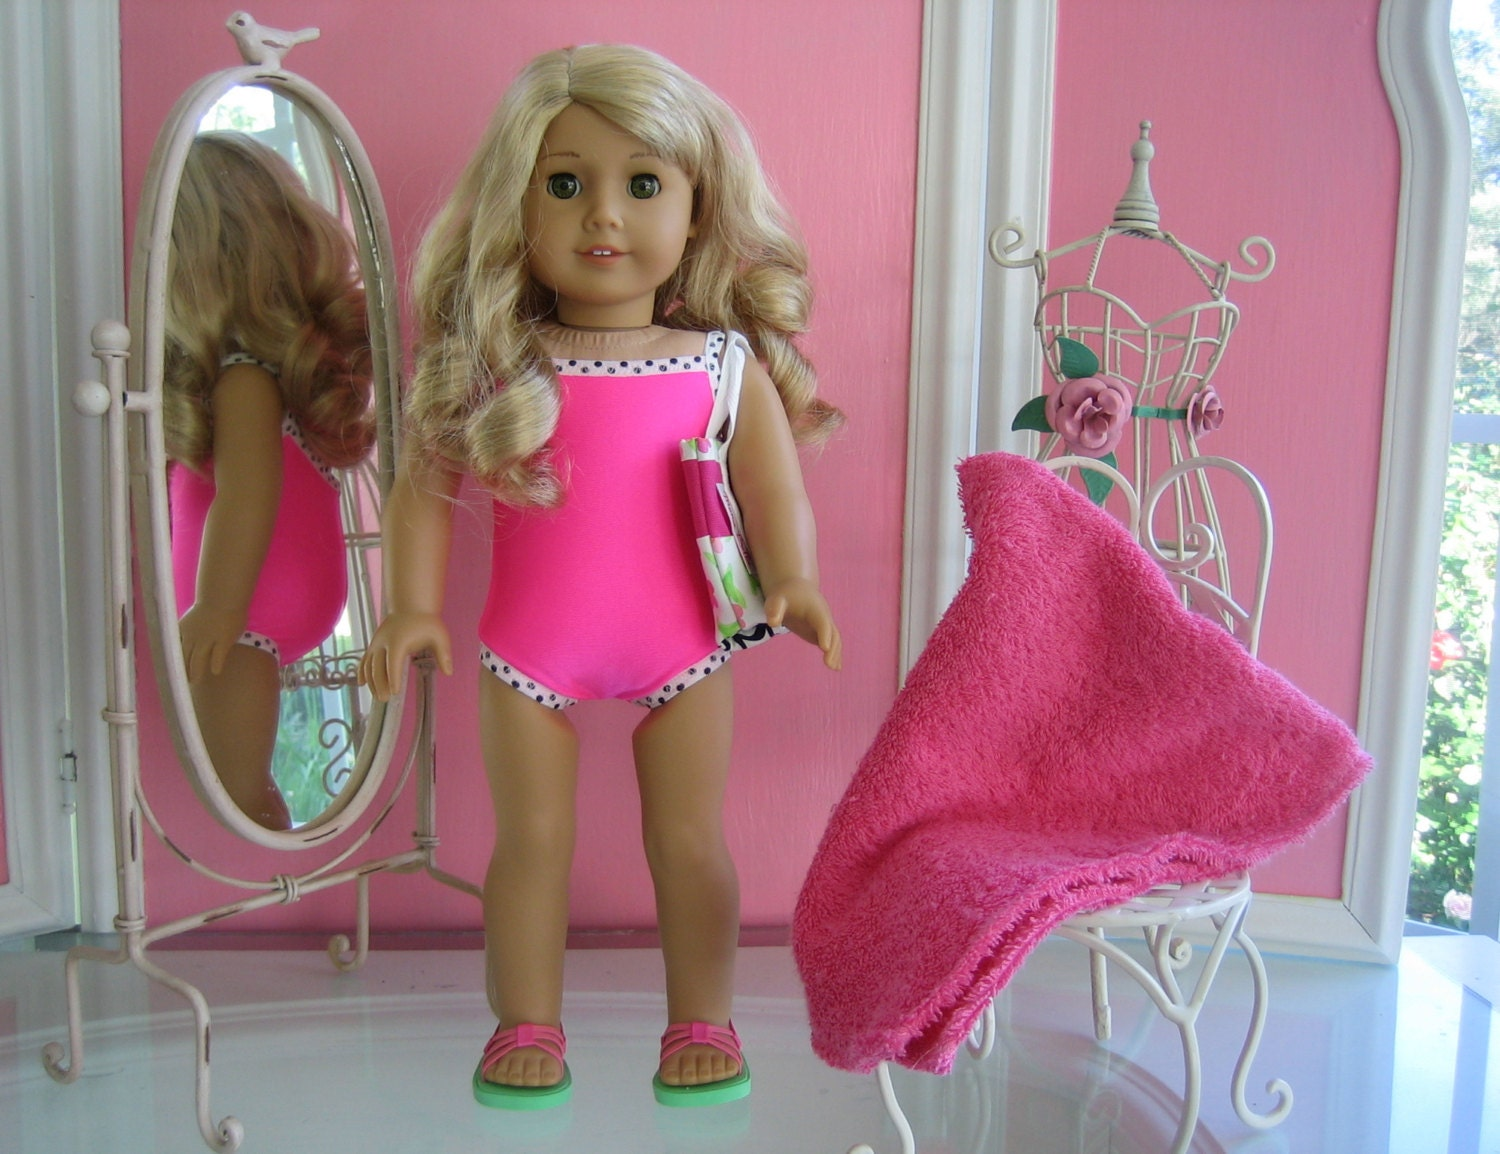 Swimsuit, towel, bag and sandals made to fit 18 inch American Girl doll